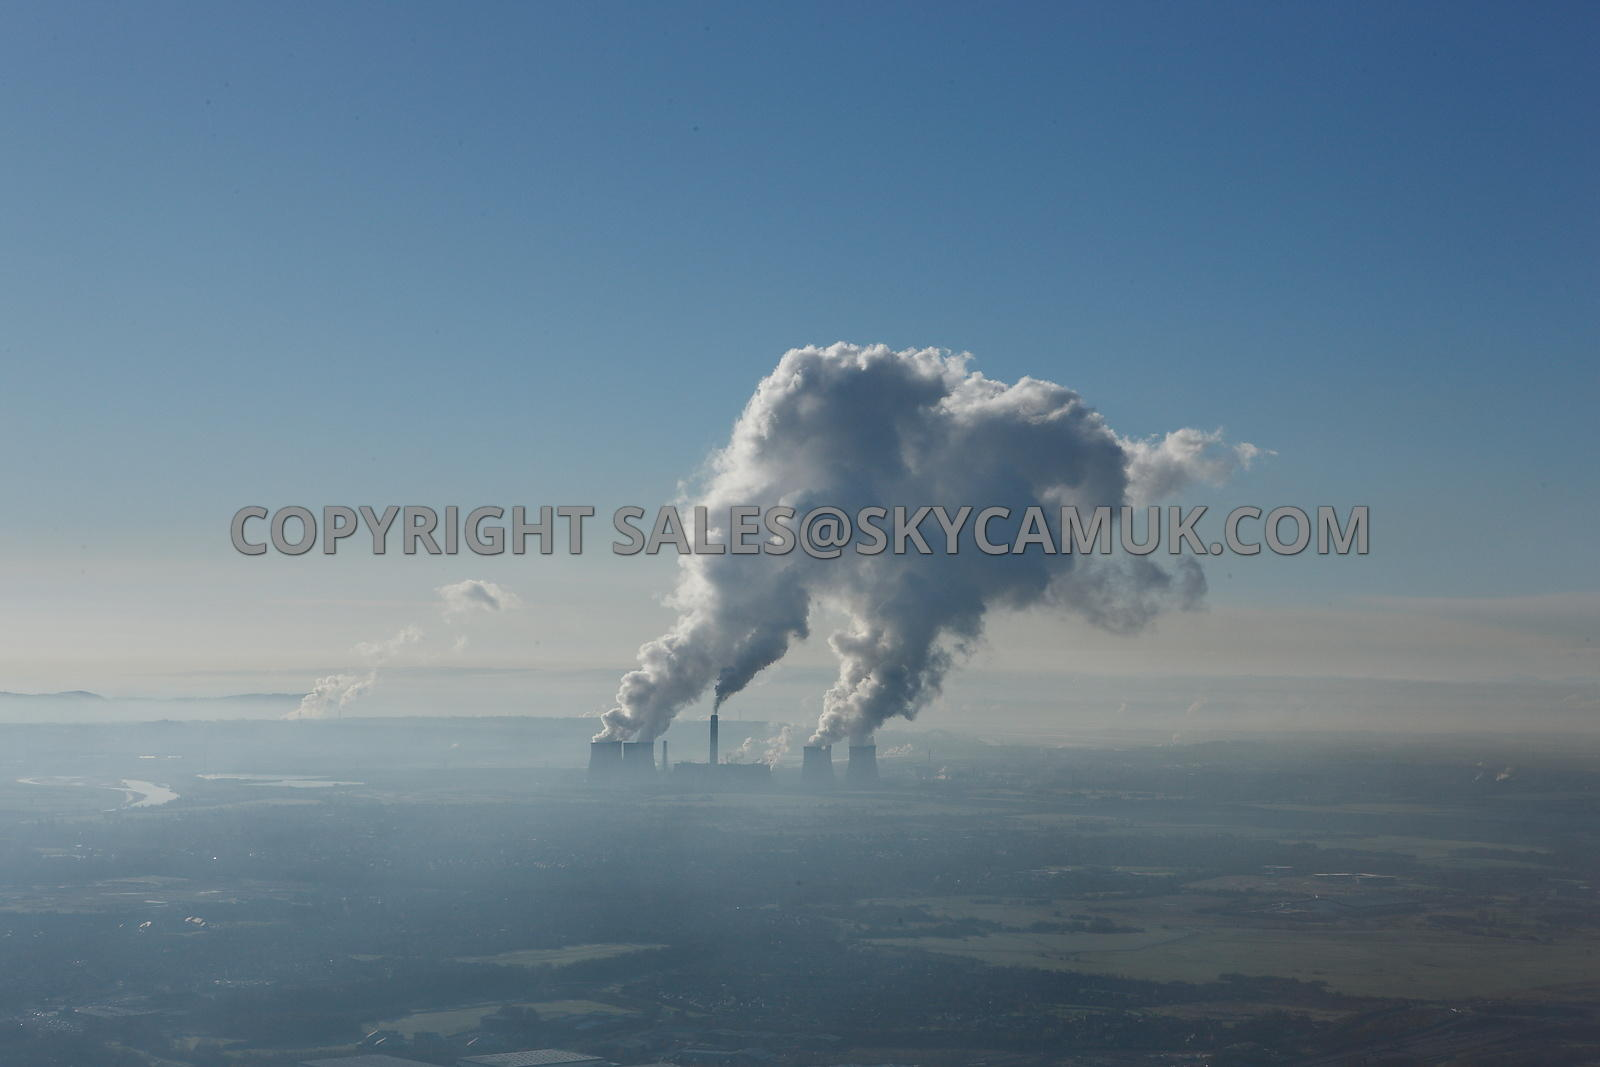 Fidders Ferry aerial photograph of plumes of steam rising above the power Station against a clear blue sky